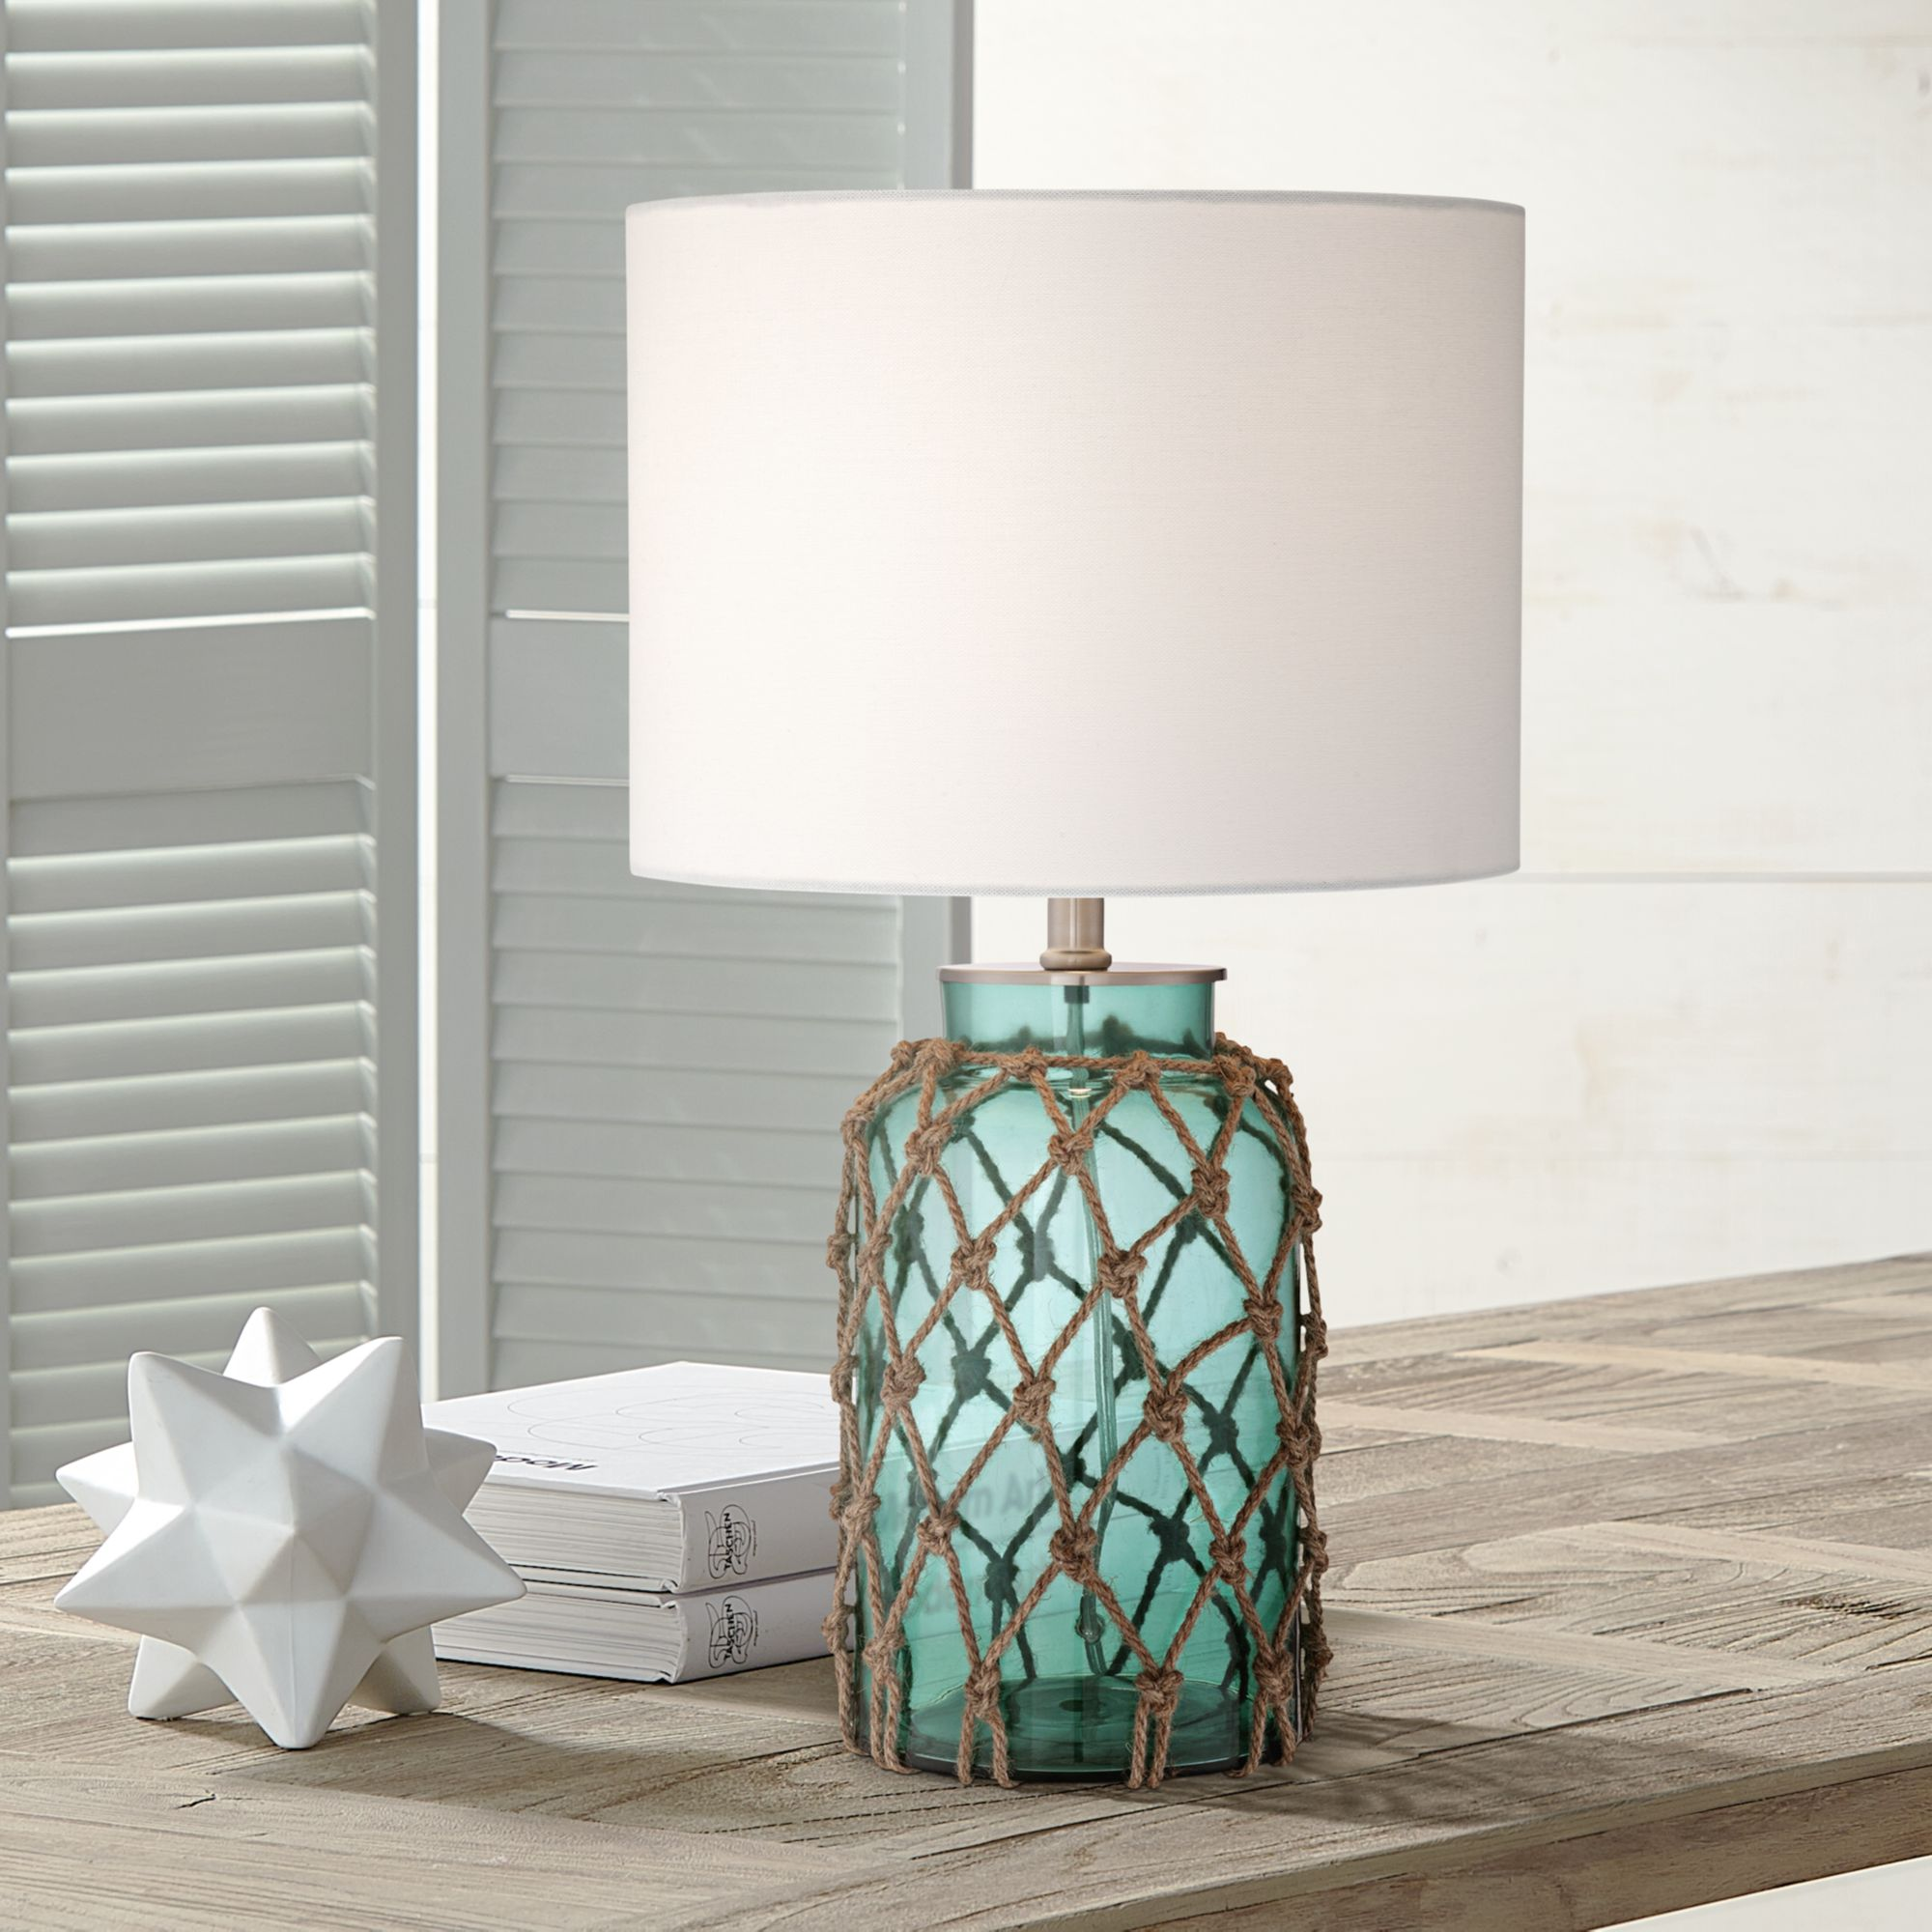 lighting nautical accent table lamp coastal blue green glass white drum rope off shade for living room family bedroom concrete navy coffee ikea ideas ashley furniture set rose